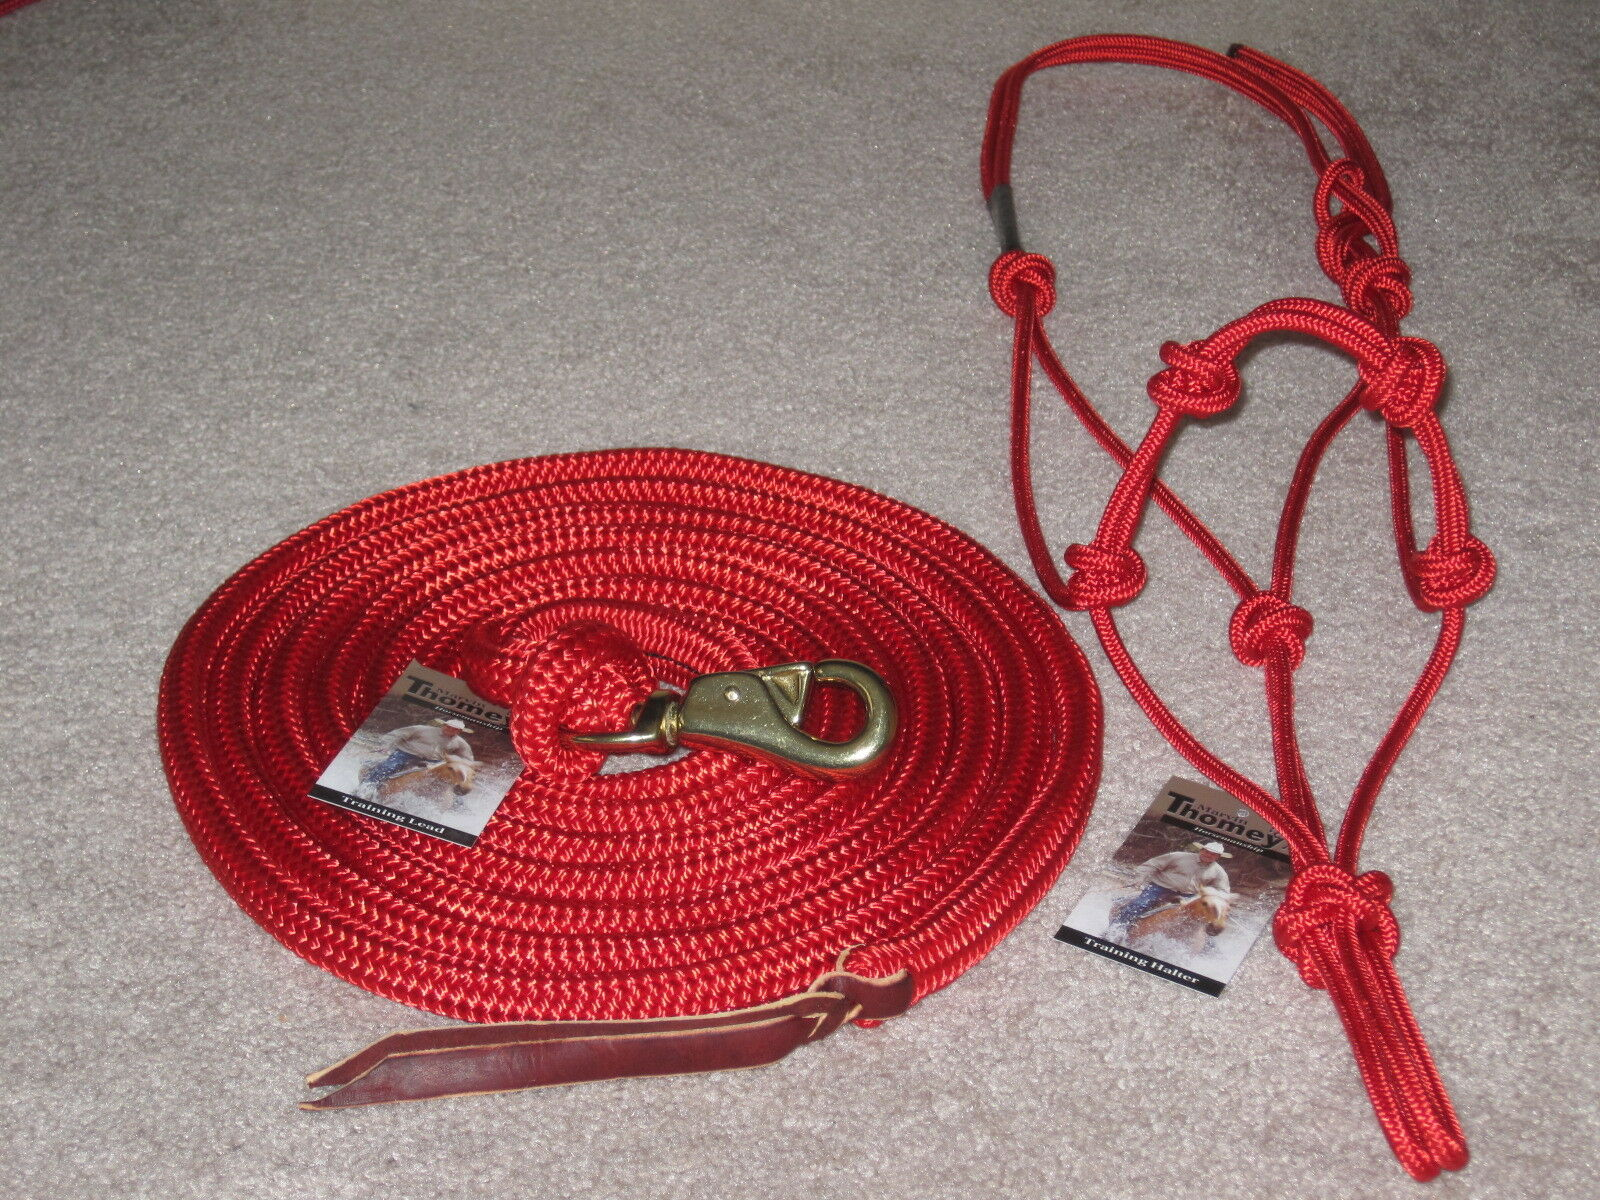 THOMEY NATURAL HORSE TRAINING HALTER & LEAD ROPE  RED